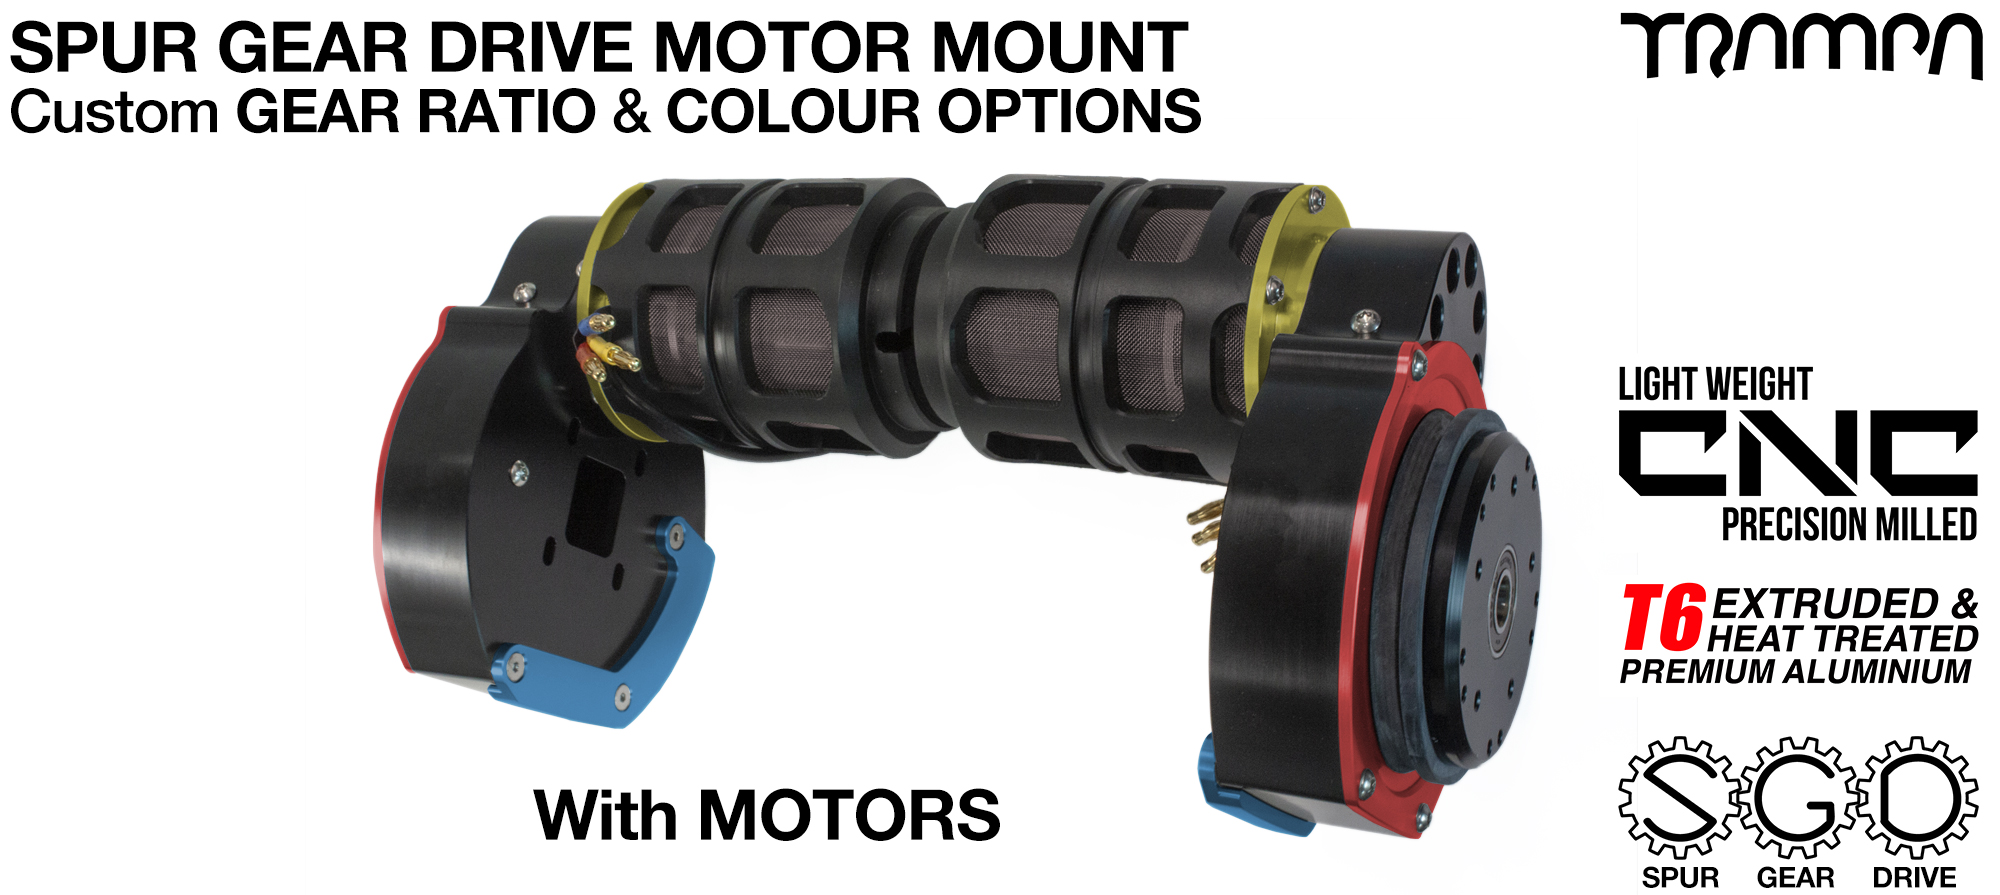 Mountainboard Spur Gear Drive TWIN Motor Mounts with CUSTOM Motors